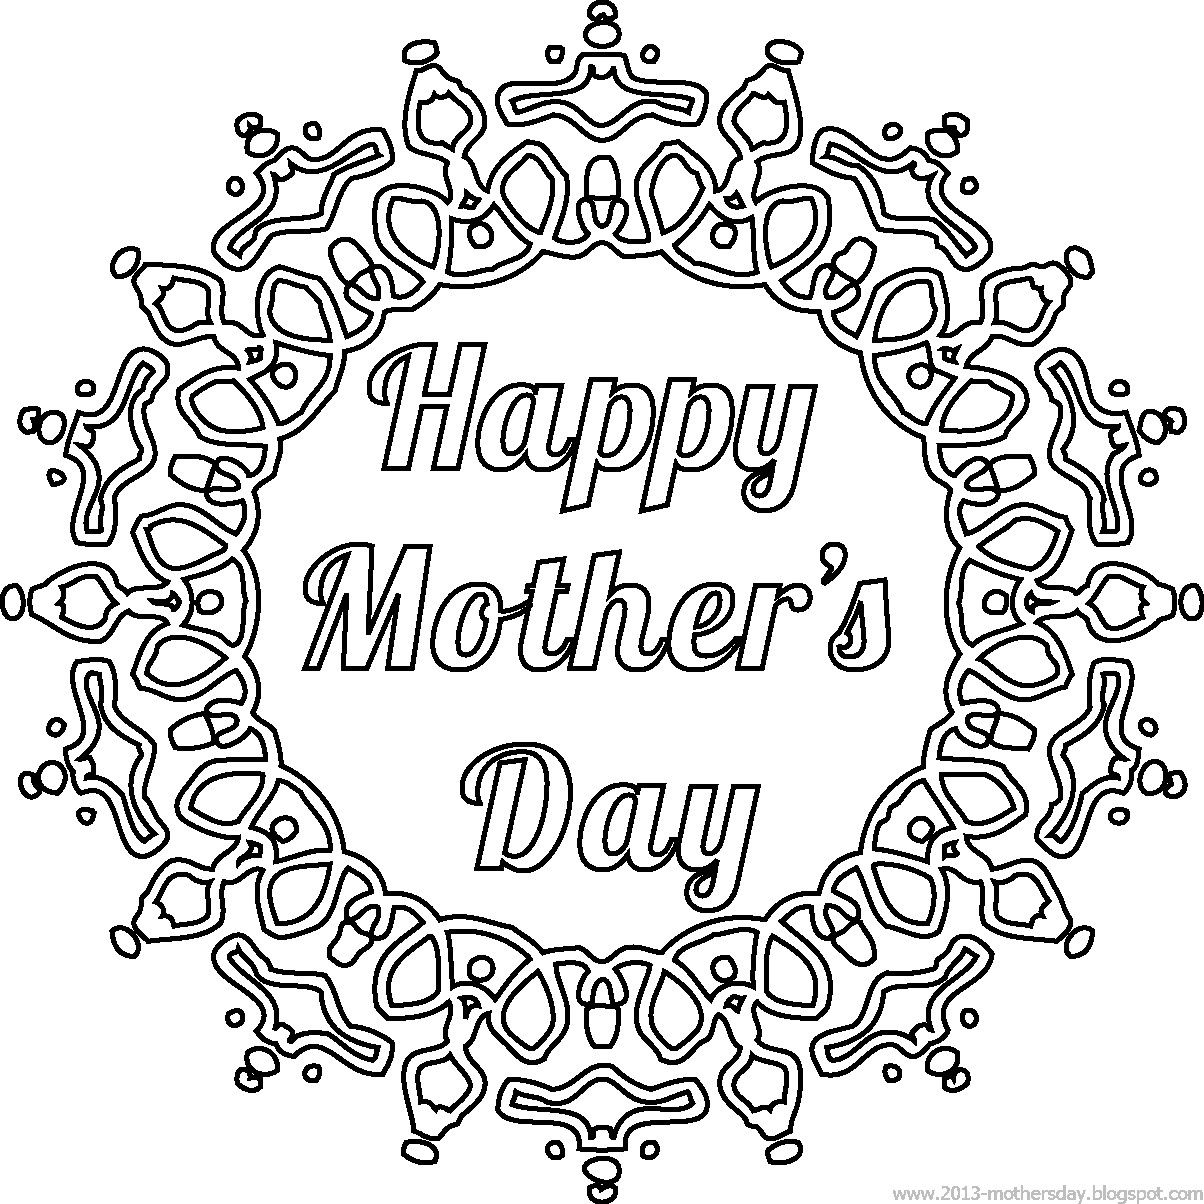 There are two variations of this Mother's Day greeting